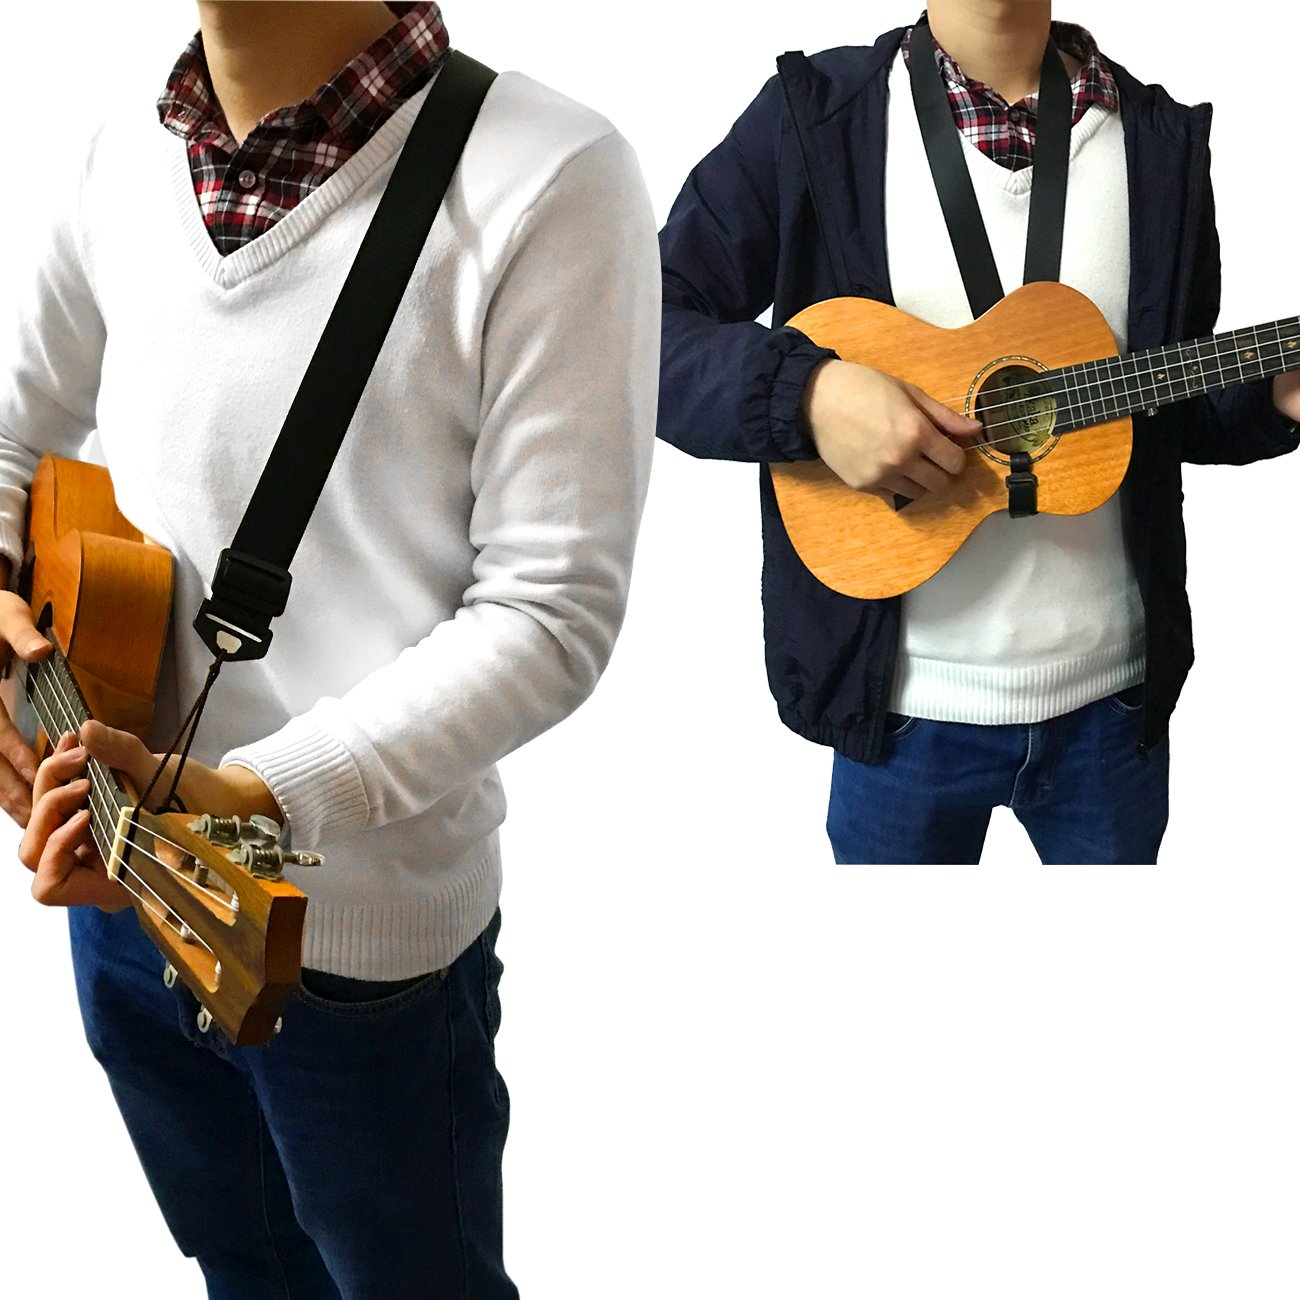 Double Use Adjustable Nylon Ukulele Strap - Can be Use as Ukulele Neck Strap or Ukulele Shoulder Strap (BLACK) 4334223320